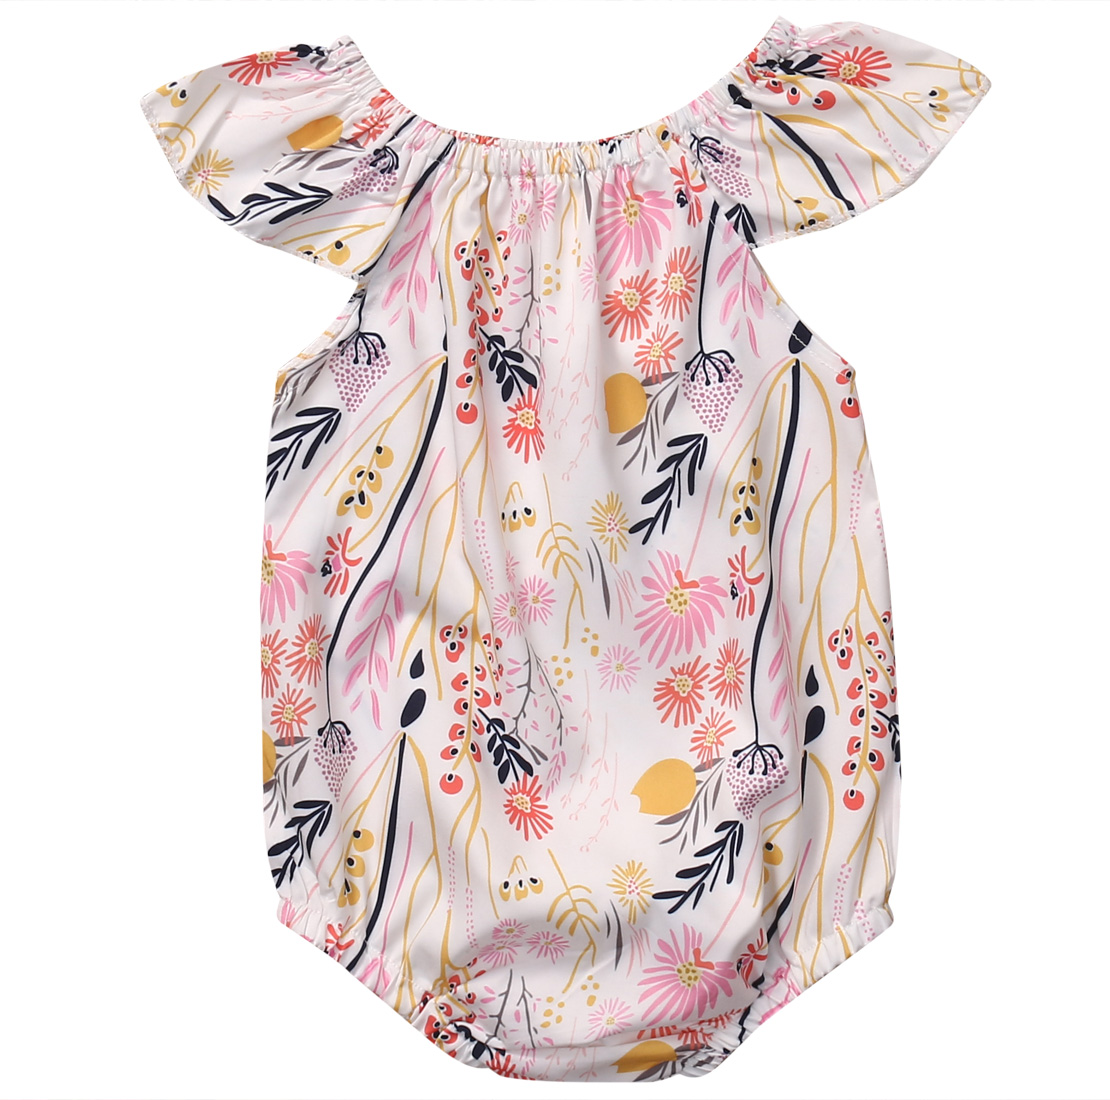 2018 Hot Sale Baby Girls Floral Clothes Short Sleeve branches of the flower Romper Jumpsuit Sunsuit Baby Summer Clothing CXD0